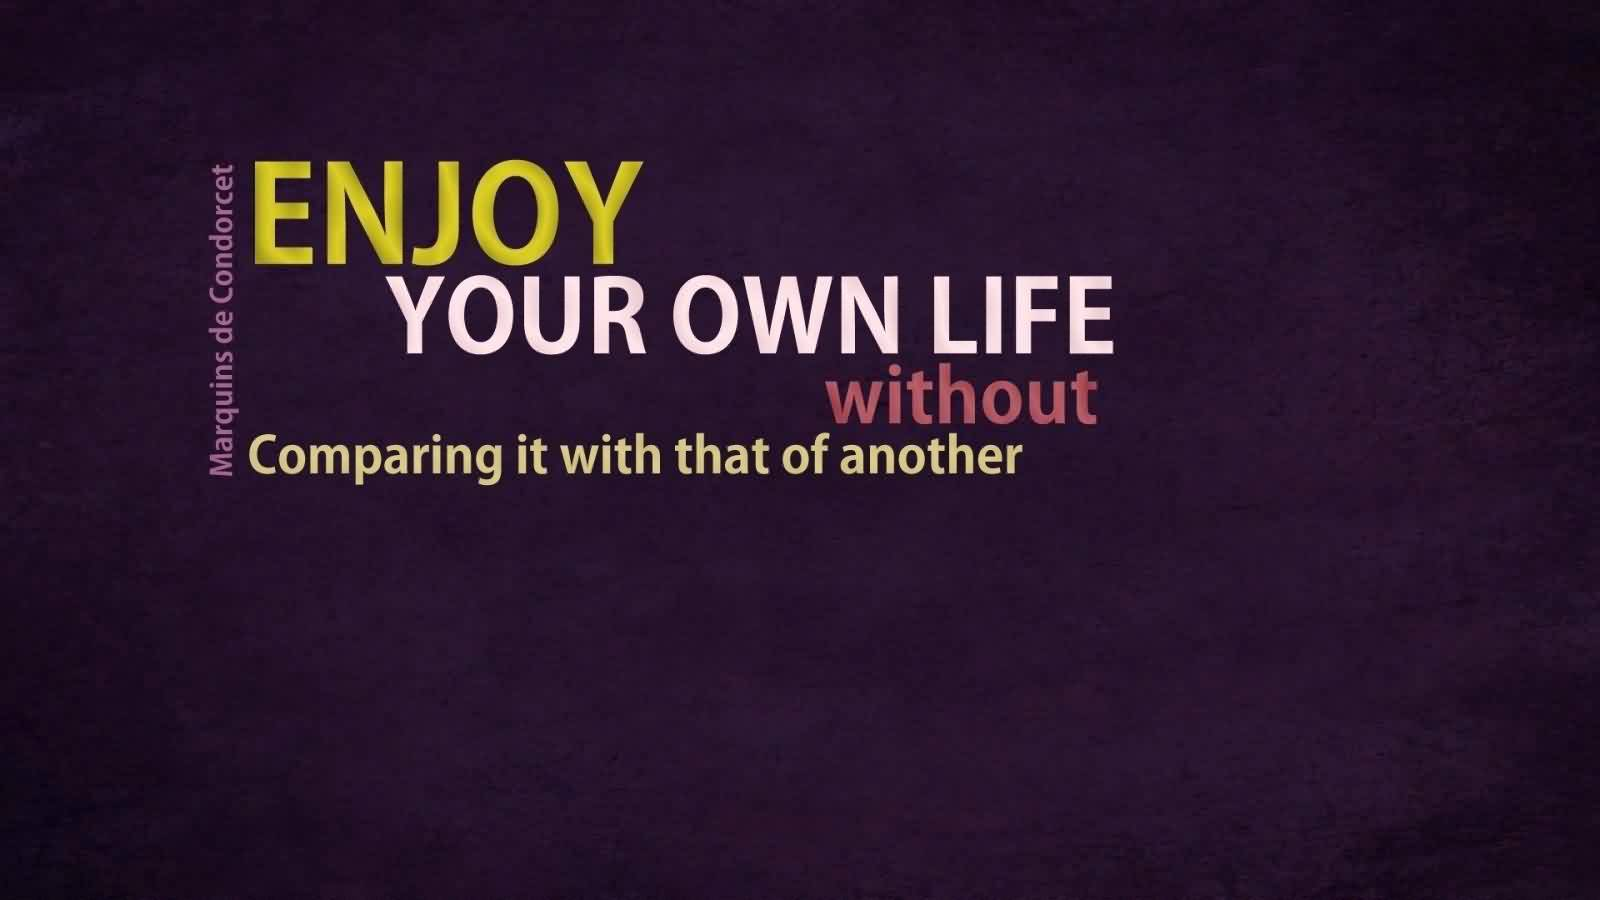 New Short Life Quote Image-Enjoy Your Own Life